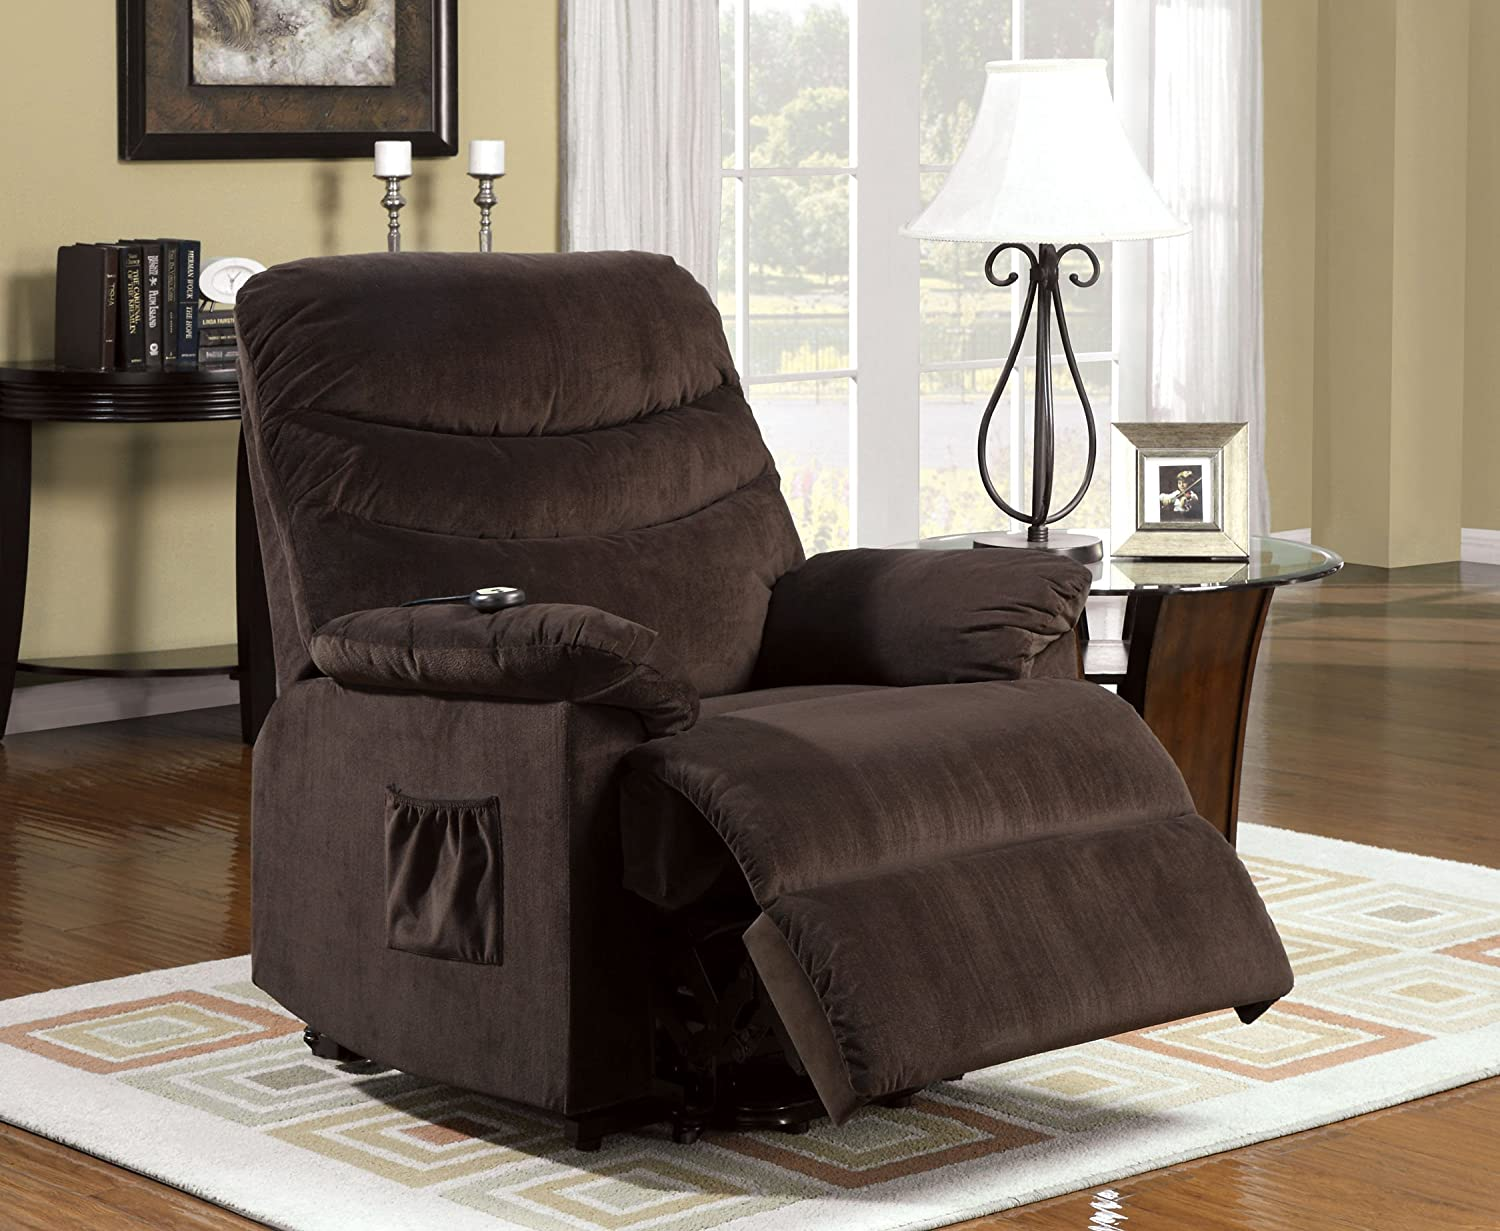 amazoncom furniture of america venturi bella fabric recliner with standassist power lift system cocoa brown kitchen u0026 dining